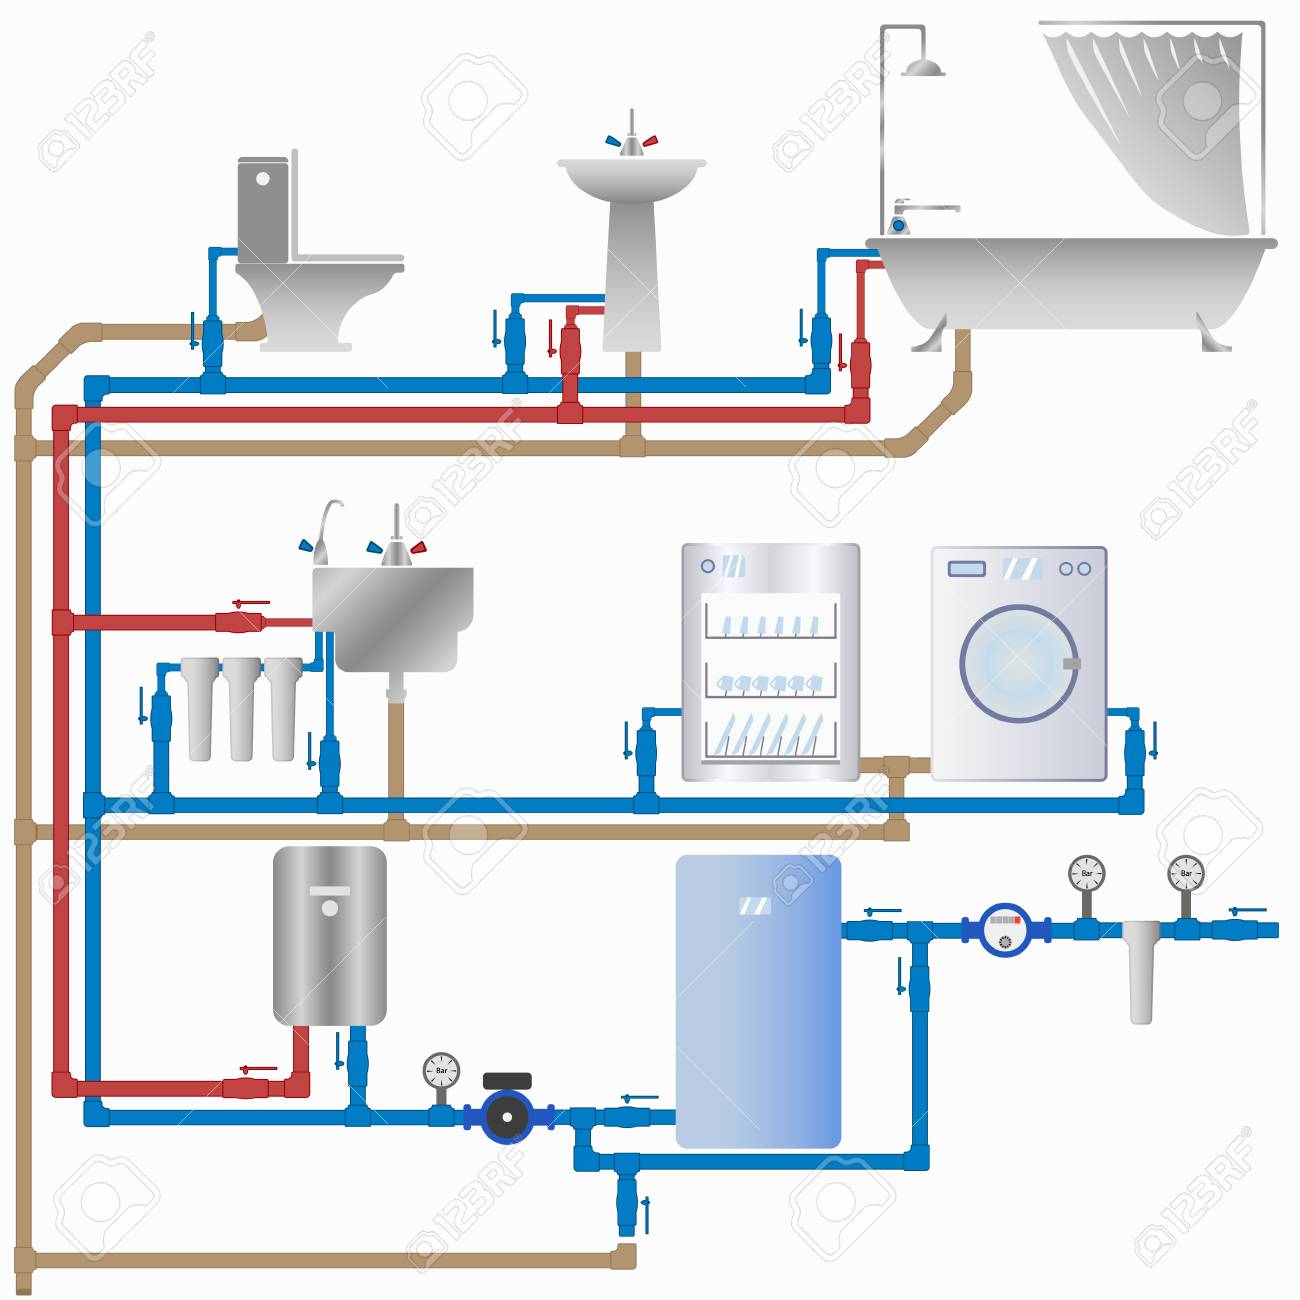 Vector image of the water supply and sewerage system in the house